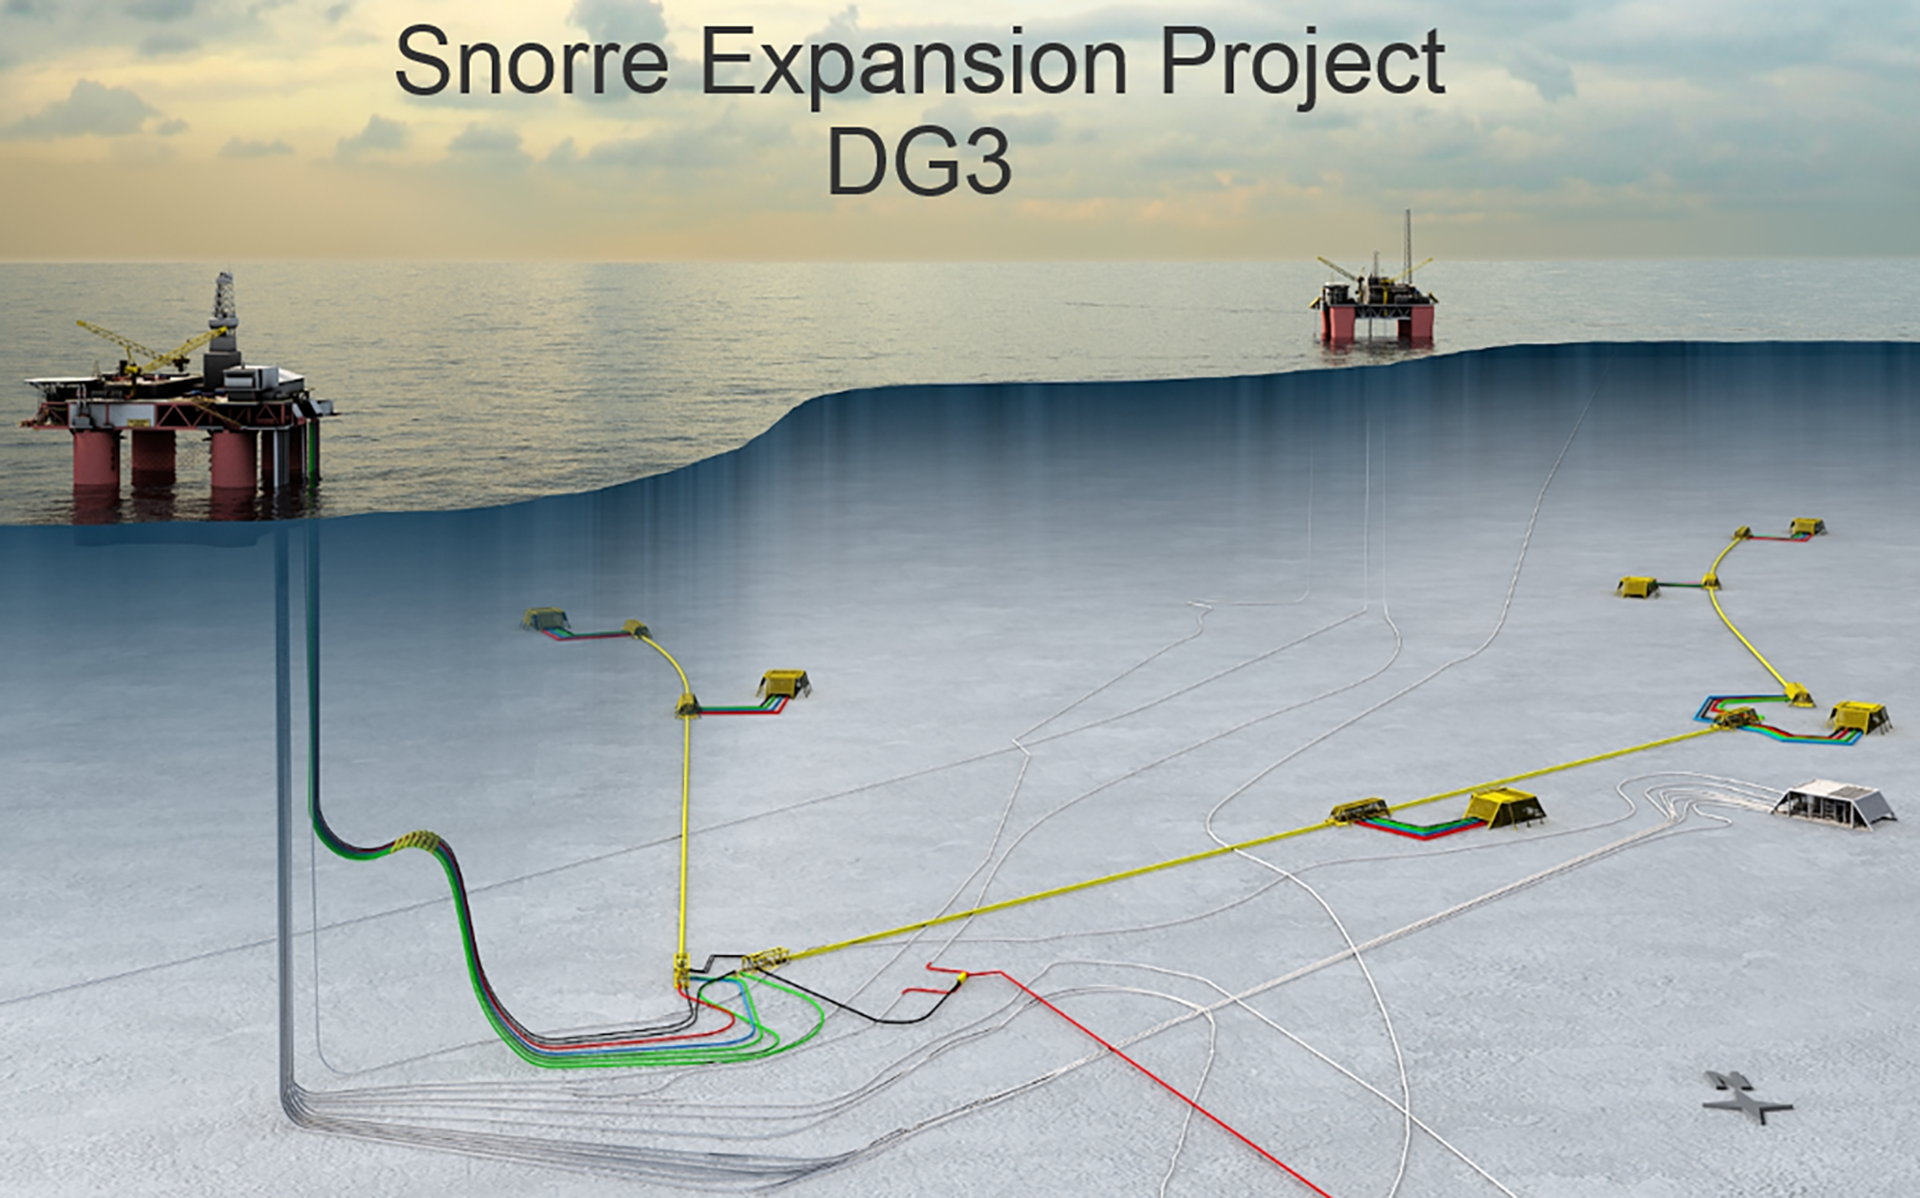 Comprehensive Snorre plan submitted - The Norwegian